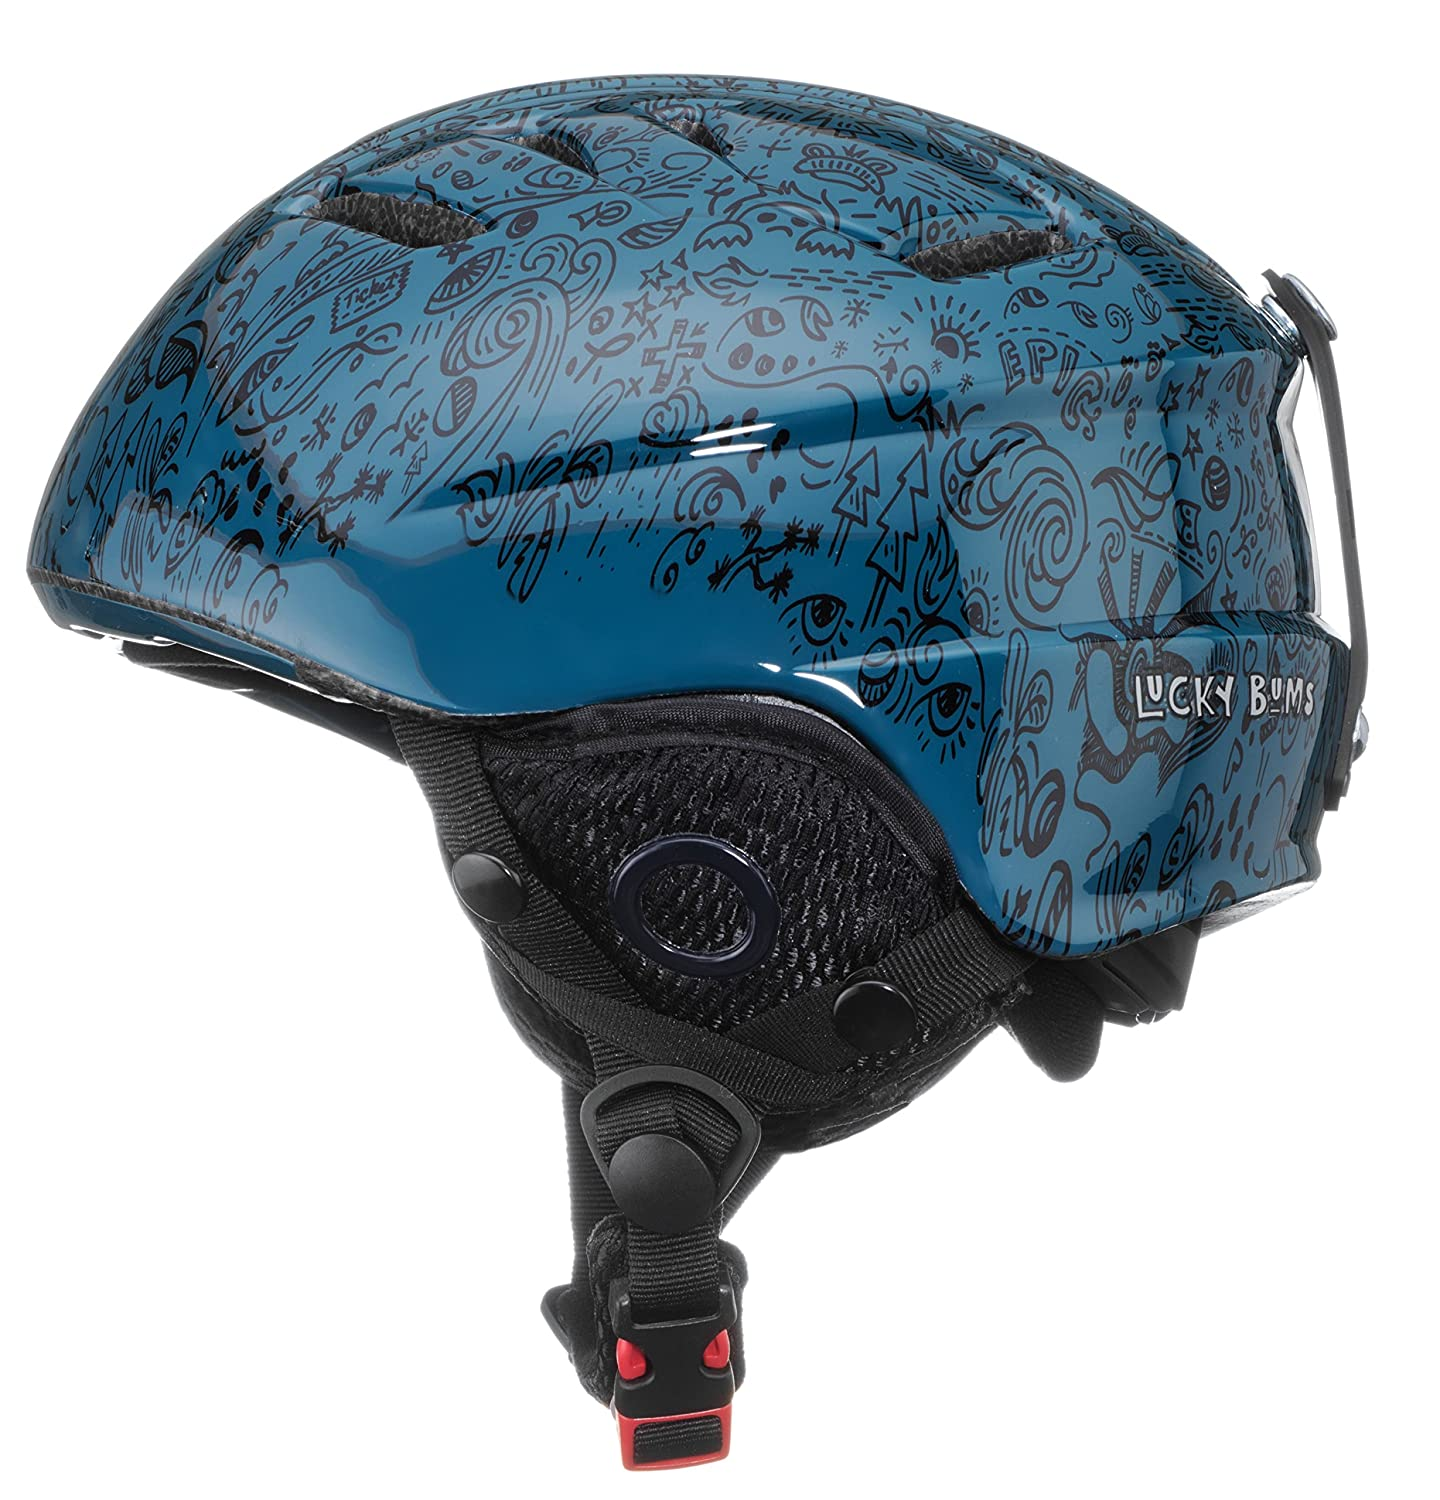 Top 15 Best Ski Helmet for Kids Reviews in 2020 9